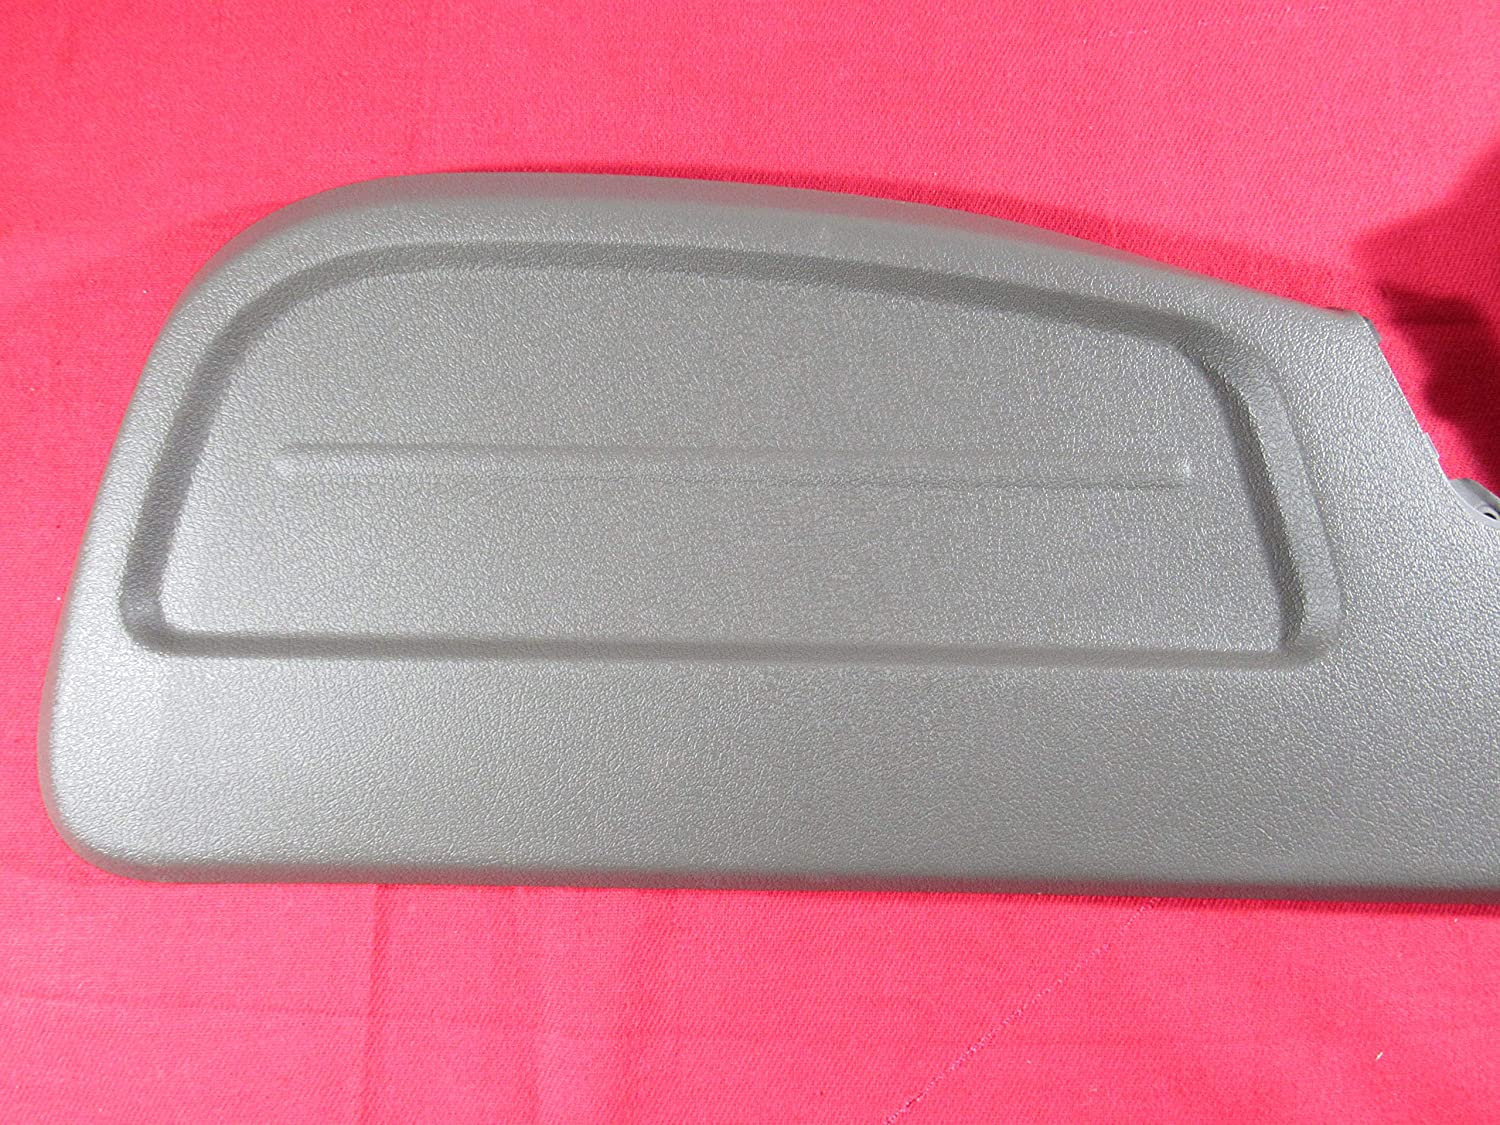 Genuine Chrysler 1PL971J8AA Seat Shield